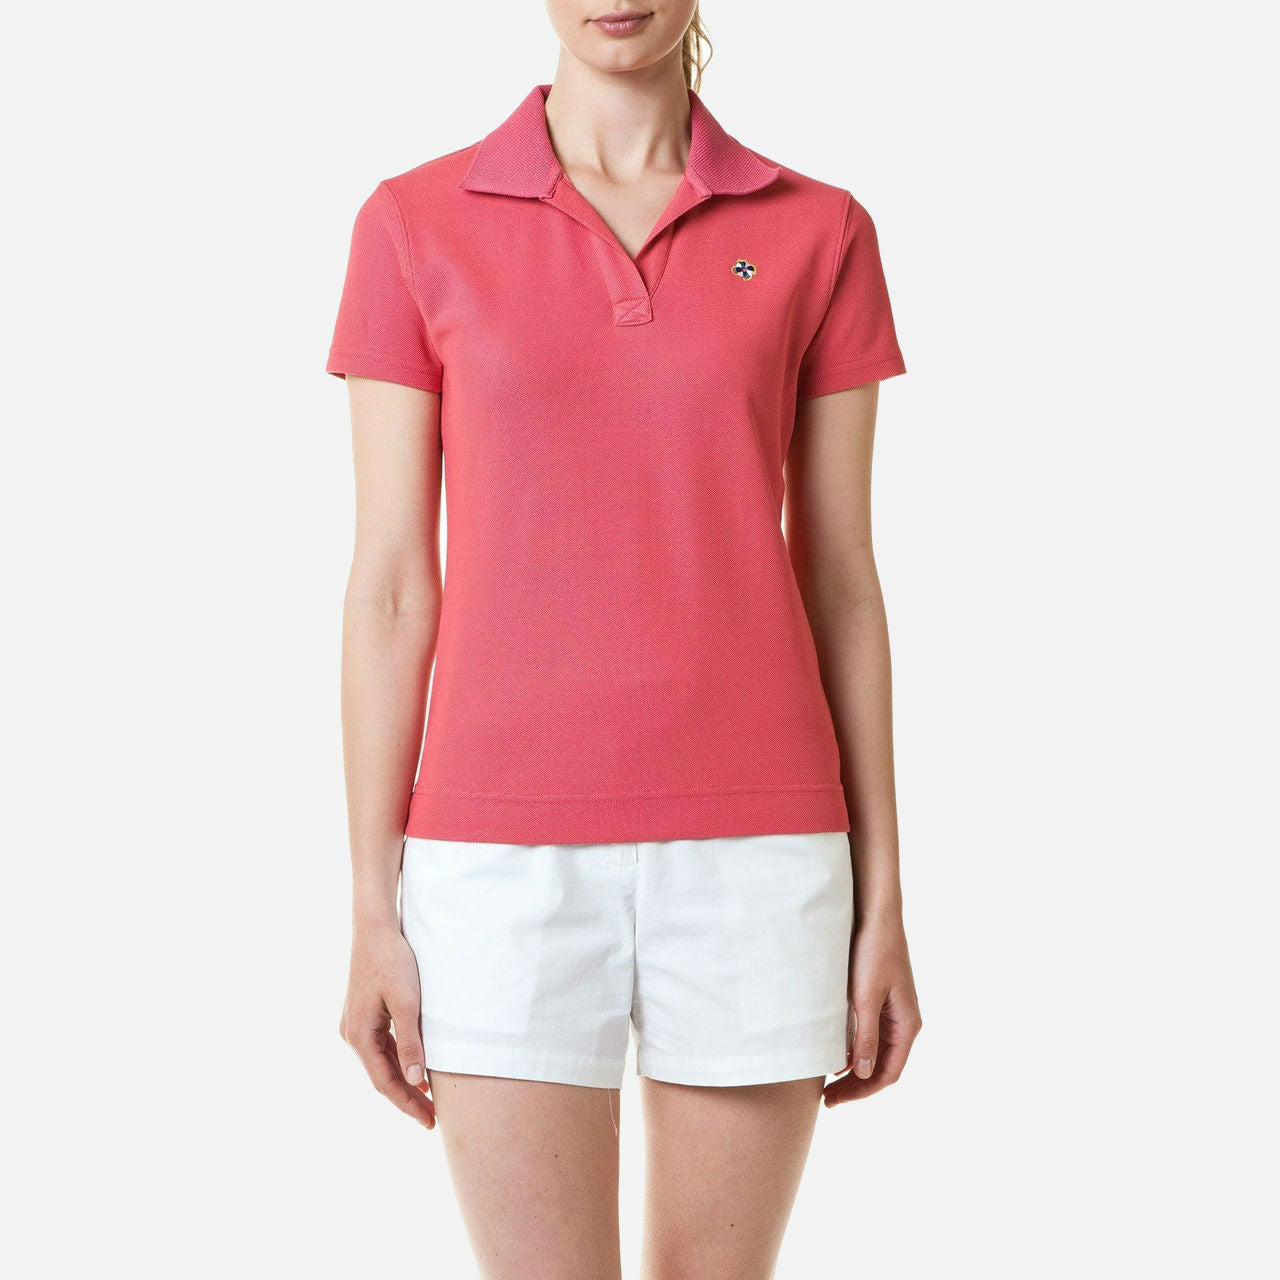 Castaway Islander V-Neck Polo - Hurricane Red